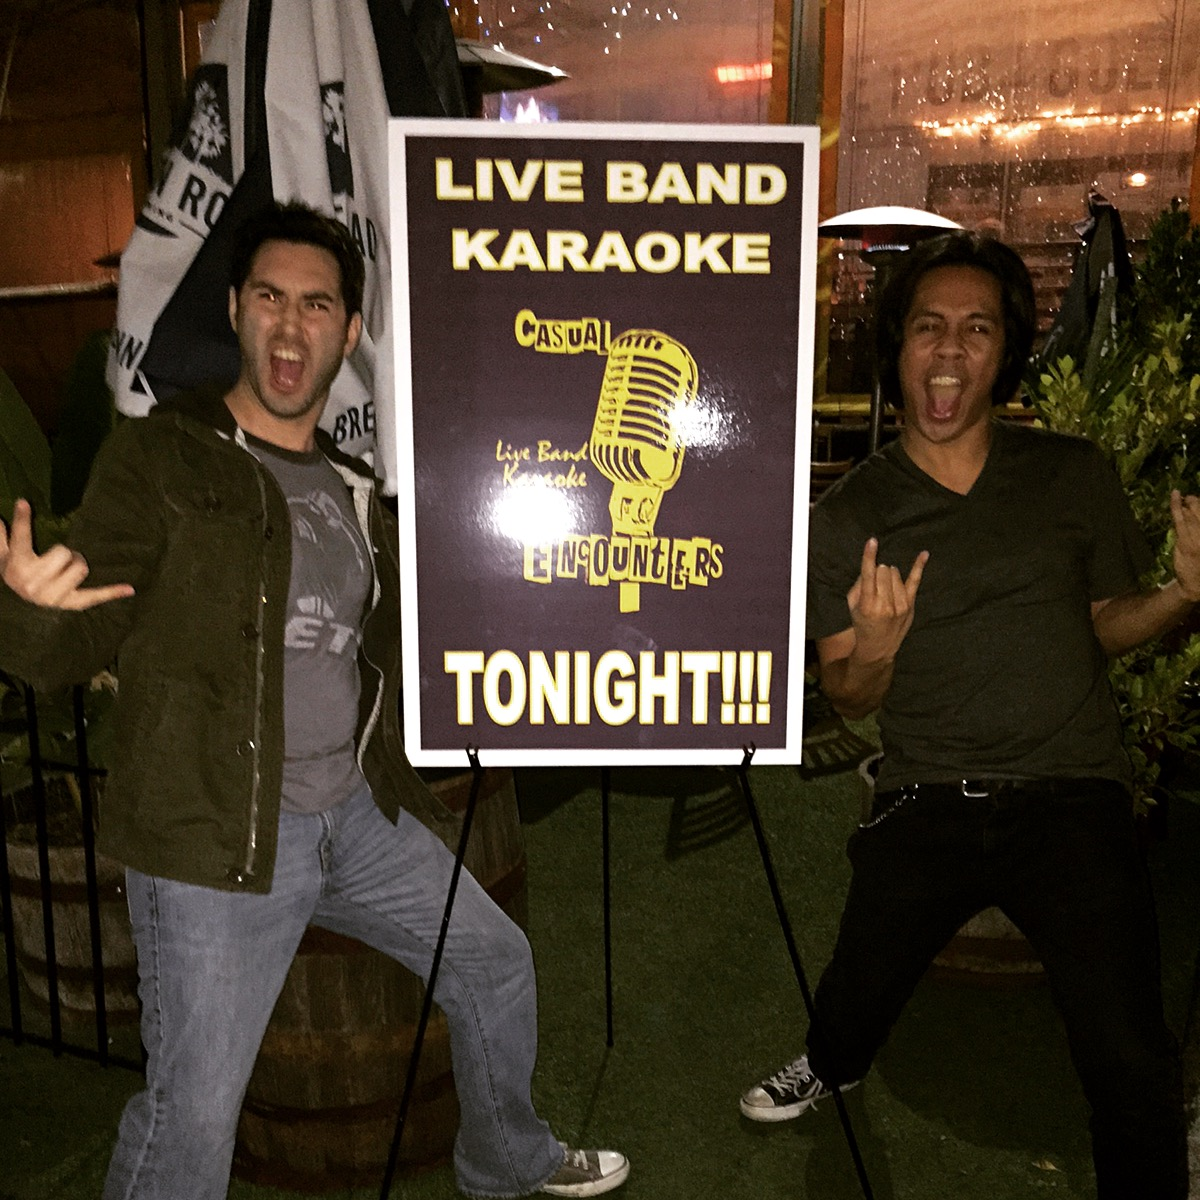 Jay Miramontes & Rosh Roslin showing off the new Casual Encounters Live Band Karaoke sign, before our Monday night show at Golden Road Brewing in Los Angeles.